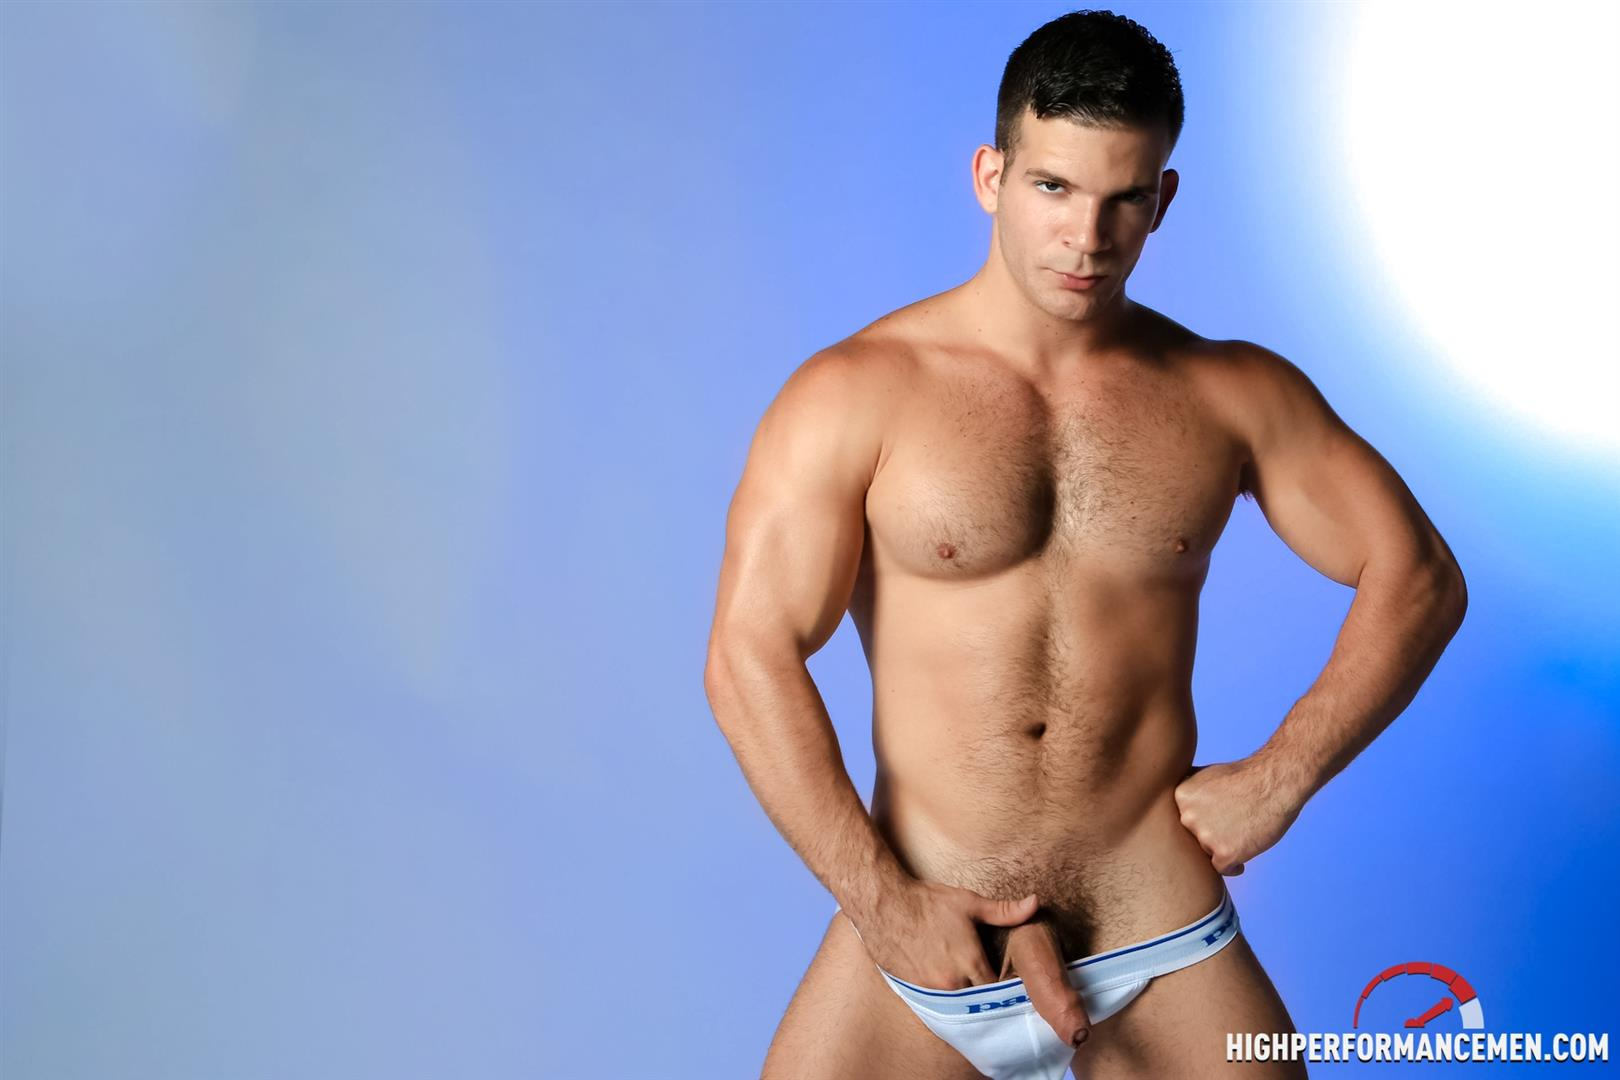 High-Performance-Men-Angel-Rock-Big-Uncut-Cock-Jerking-Off-Latino-Amateur-Gay-Porn-09 Muscle Hunk Angel Rock Jerking Off His Big Uncut Cock